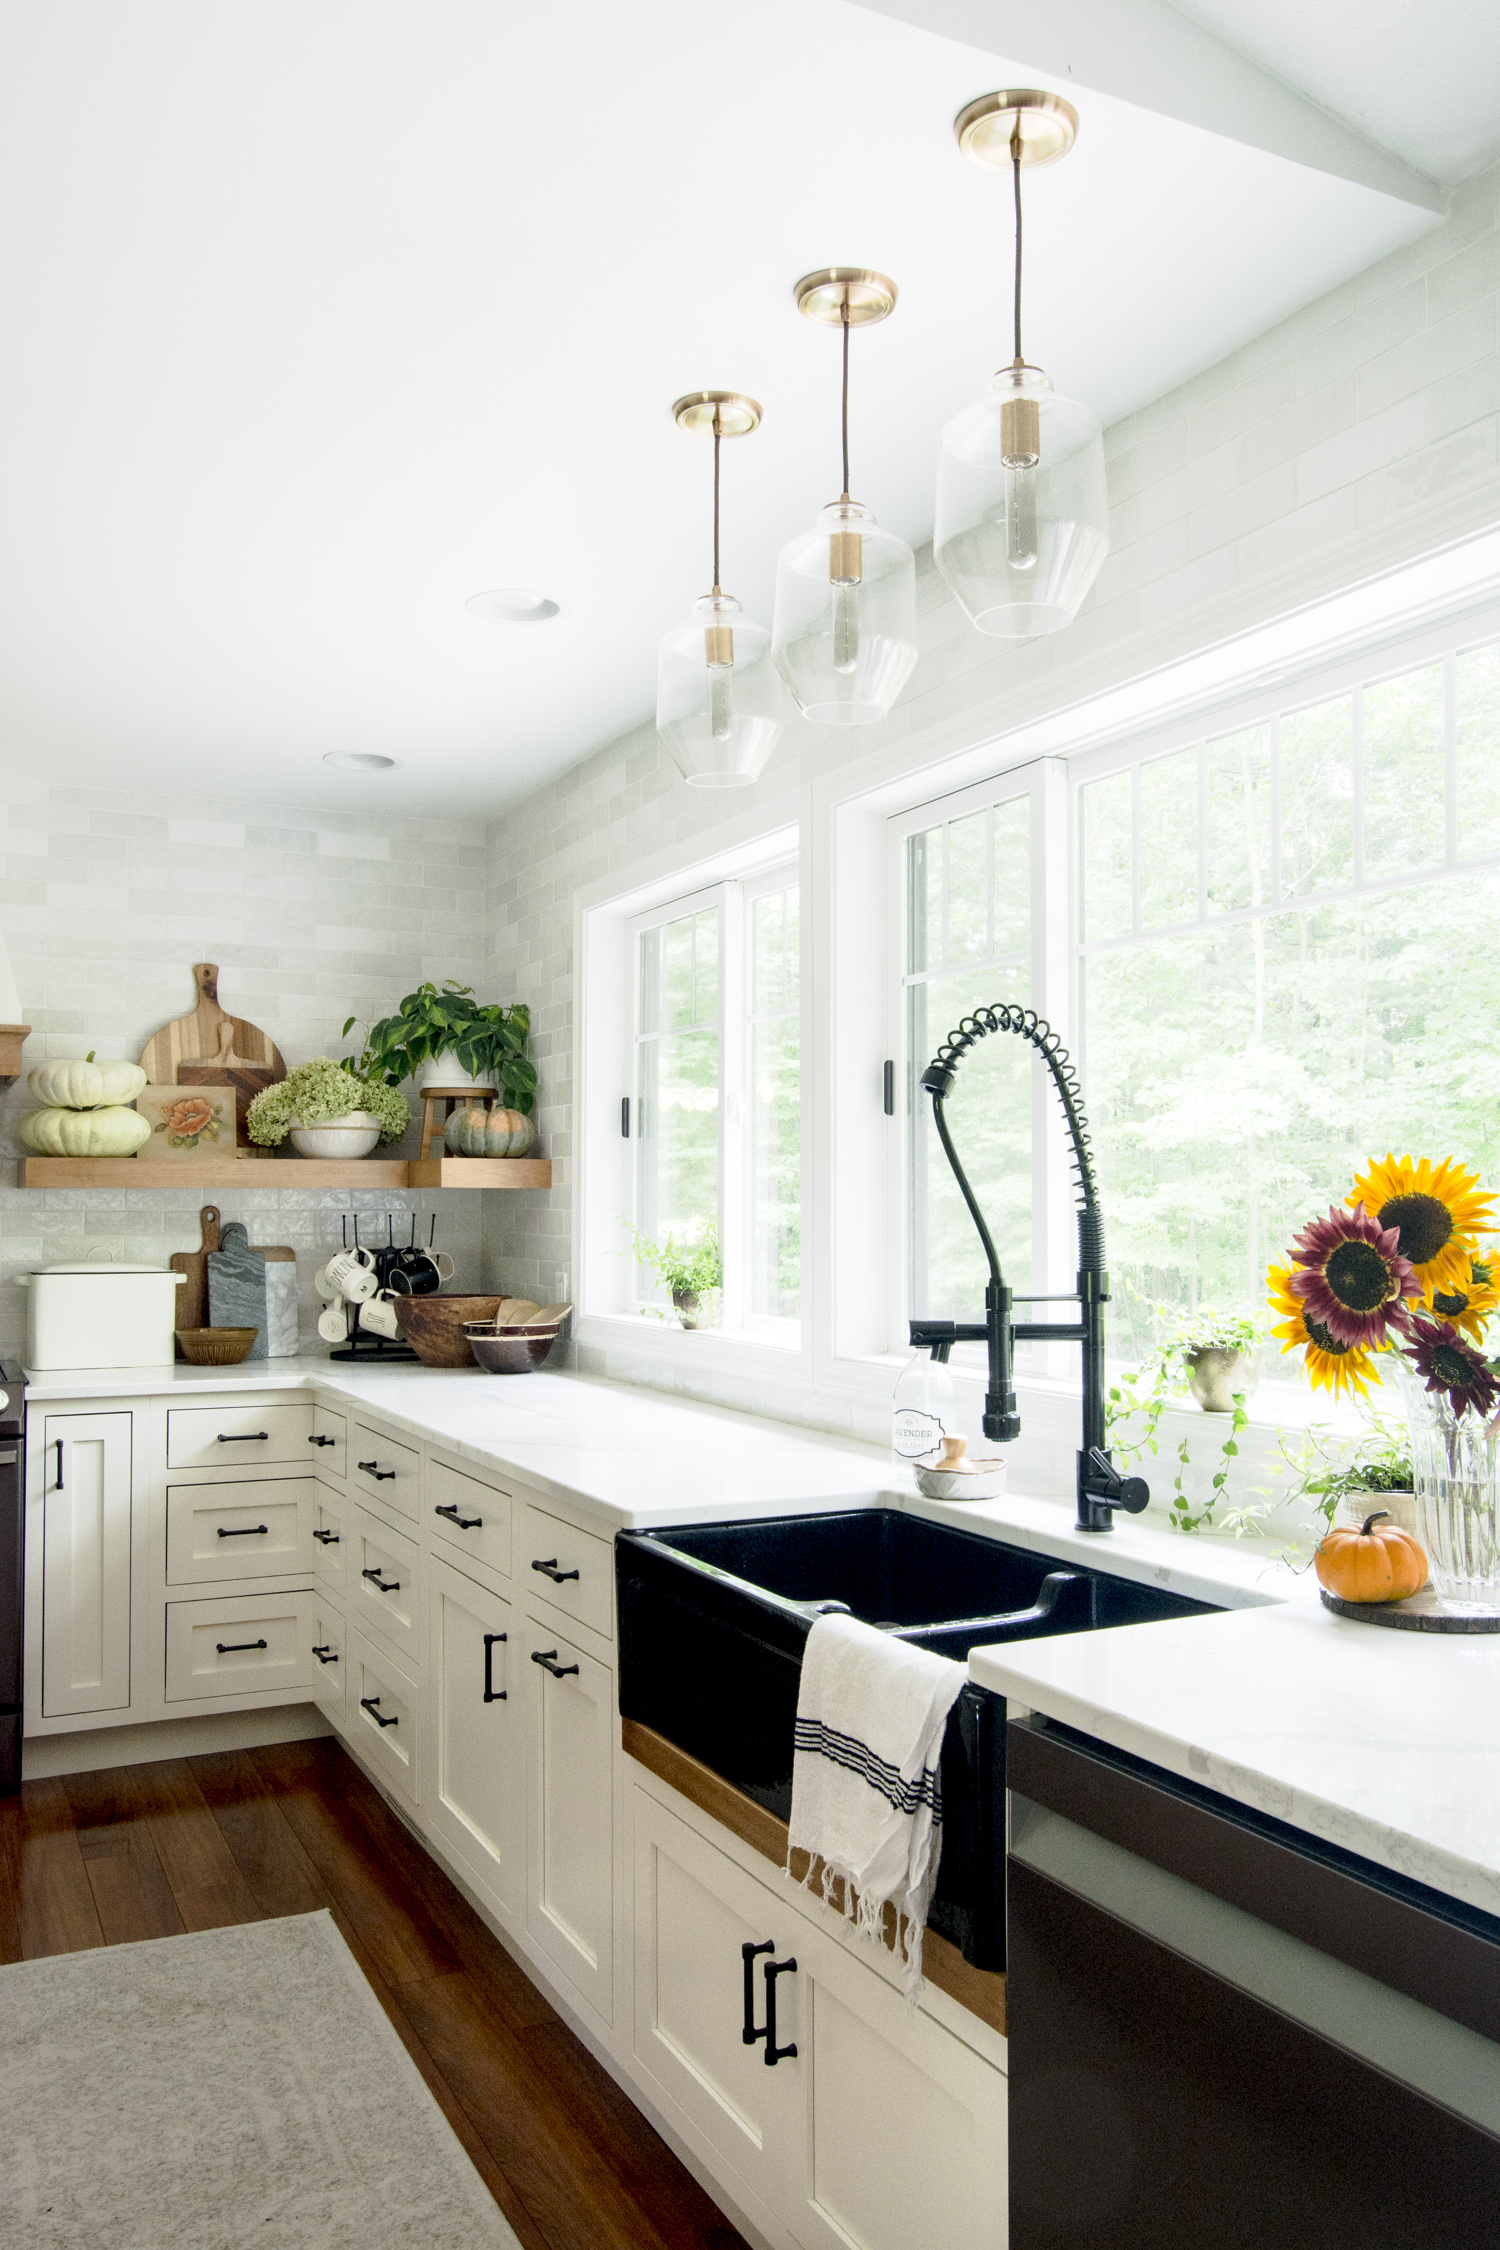 Fall home styling in a farmhouse kitchen.